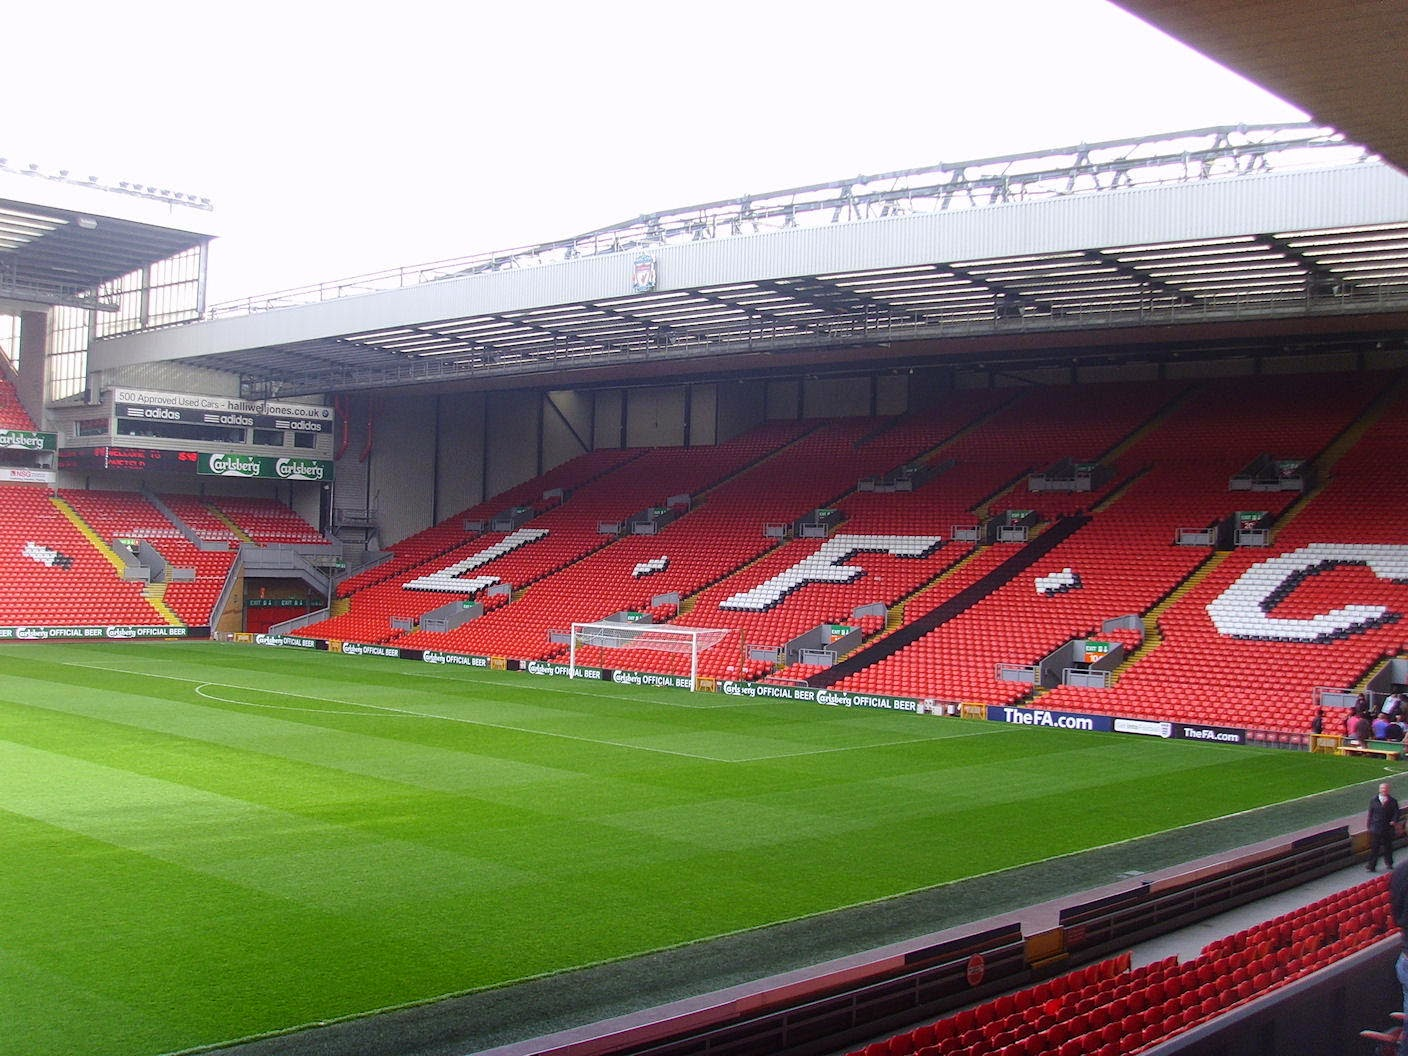 Estadio FC Liverpool